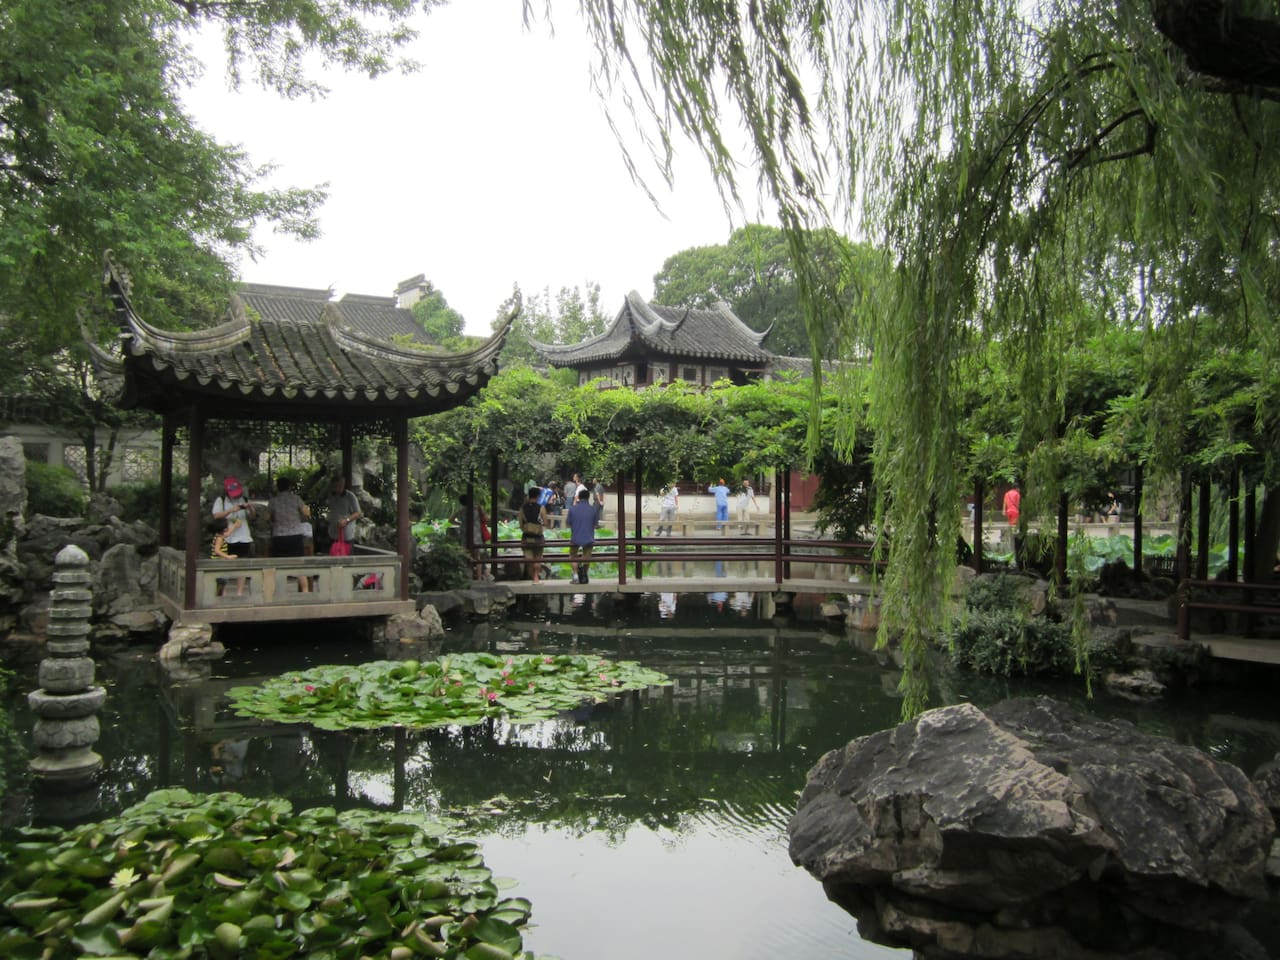 Lingering Garden--one of the four famous gardens in China, about 20 minutes walk or 5 minutes bus from my house